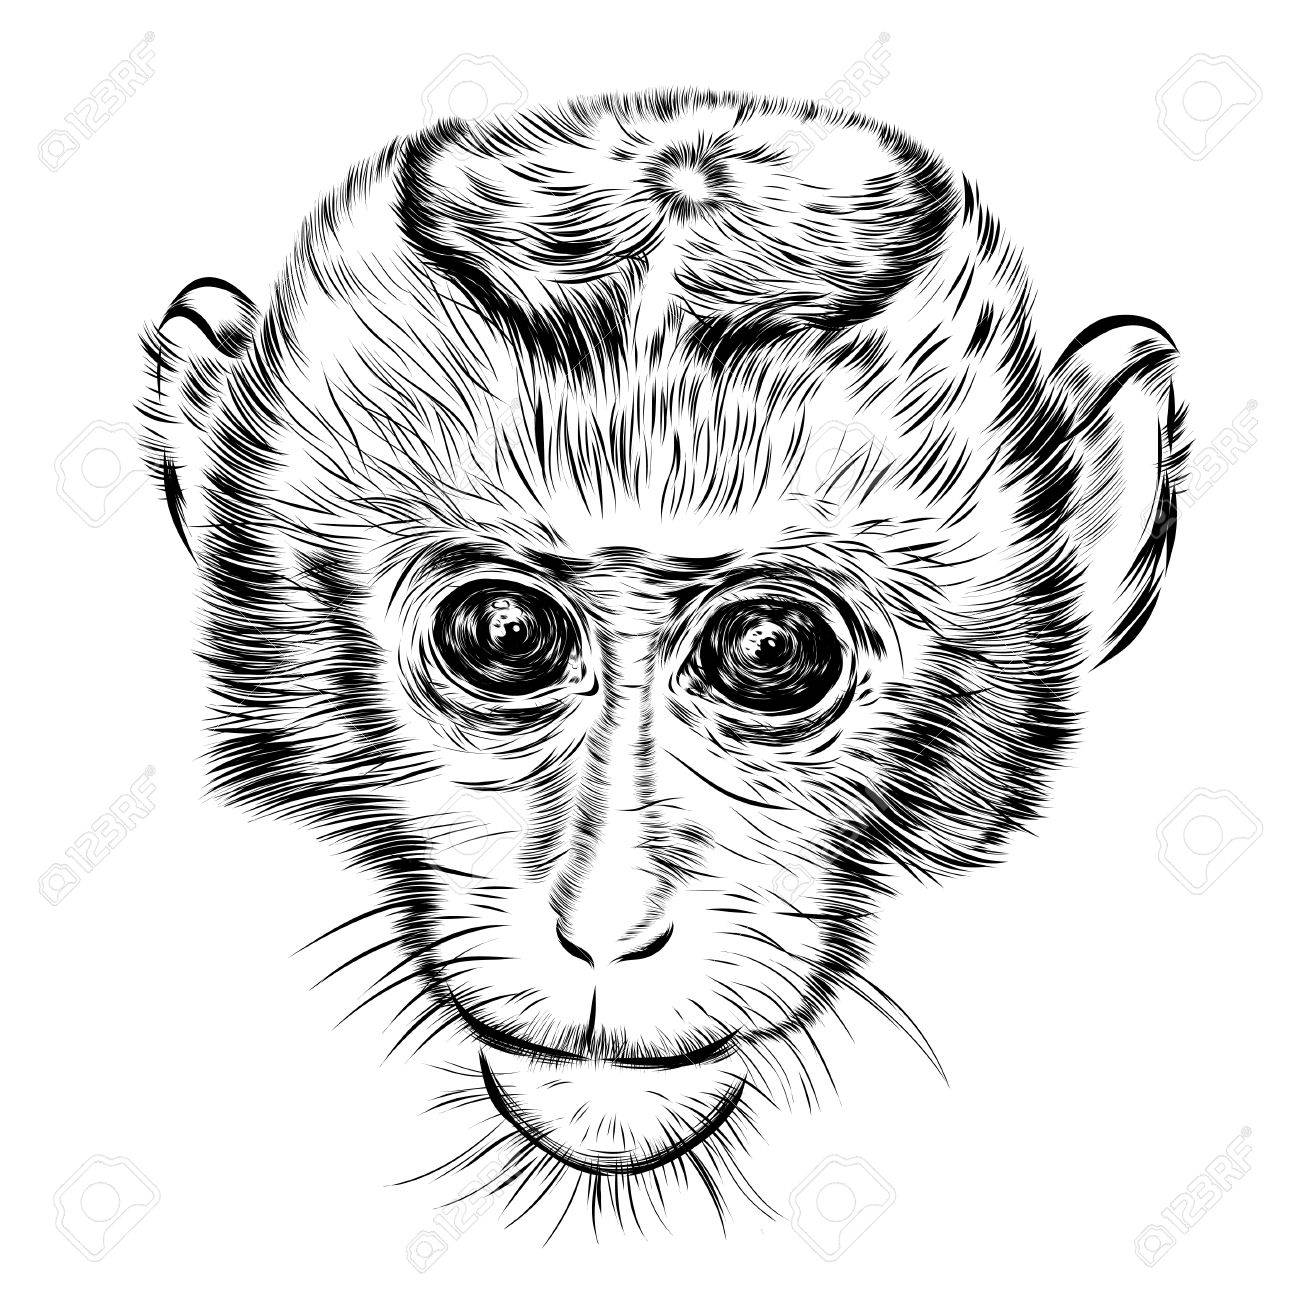 1300x1300 Sketch Monkey Face. Hand Drawn Of A Doodle Illustration. Stock